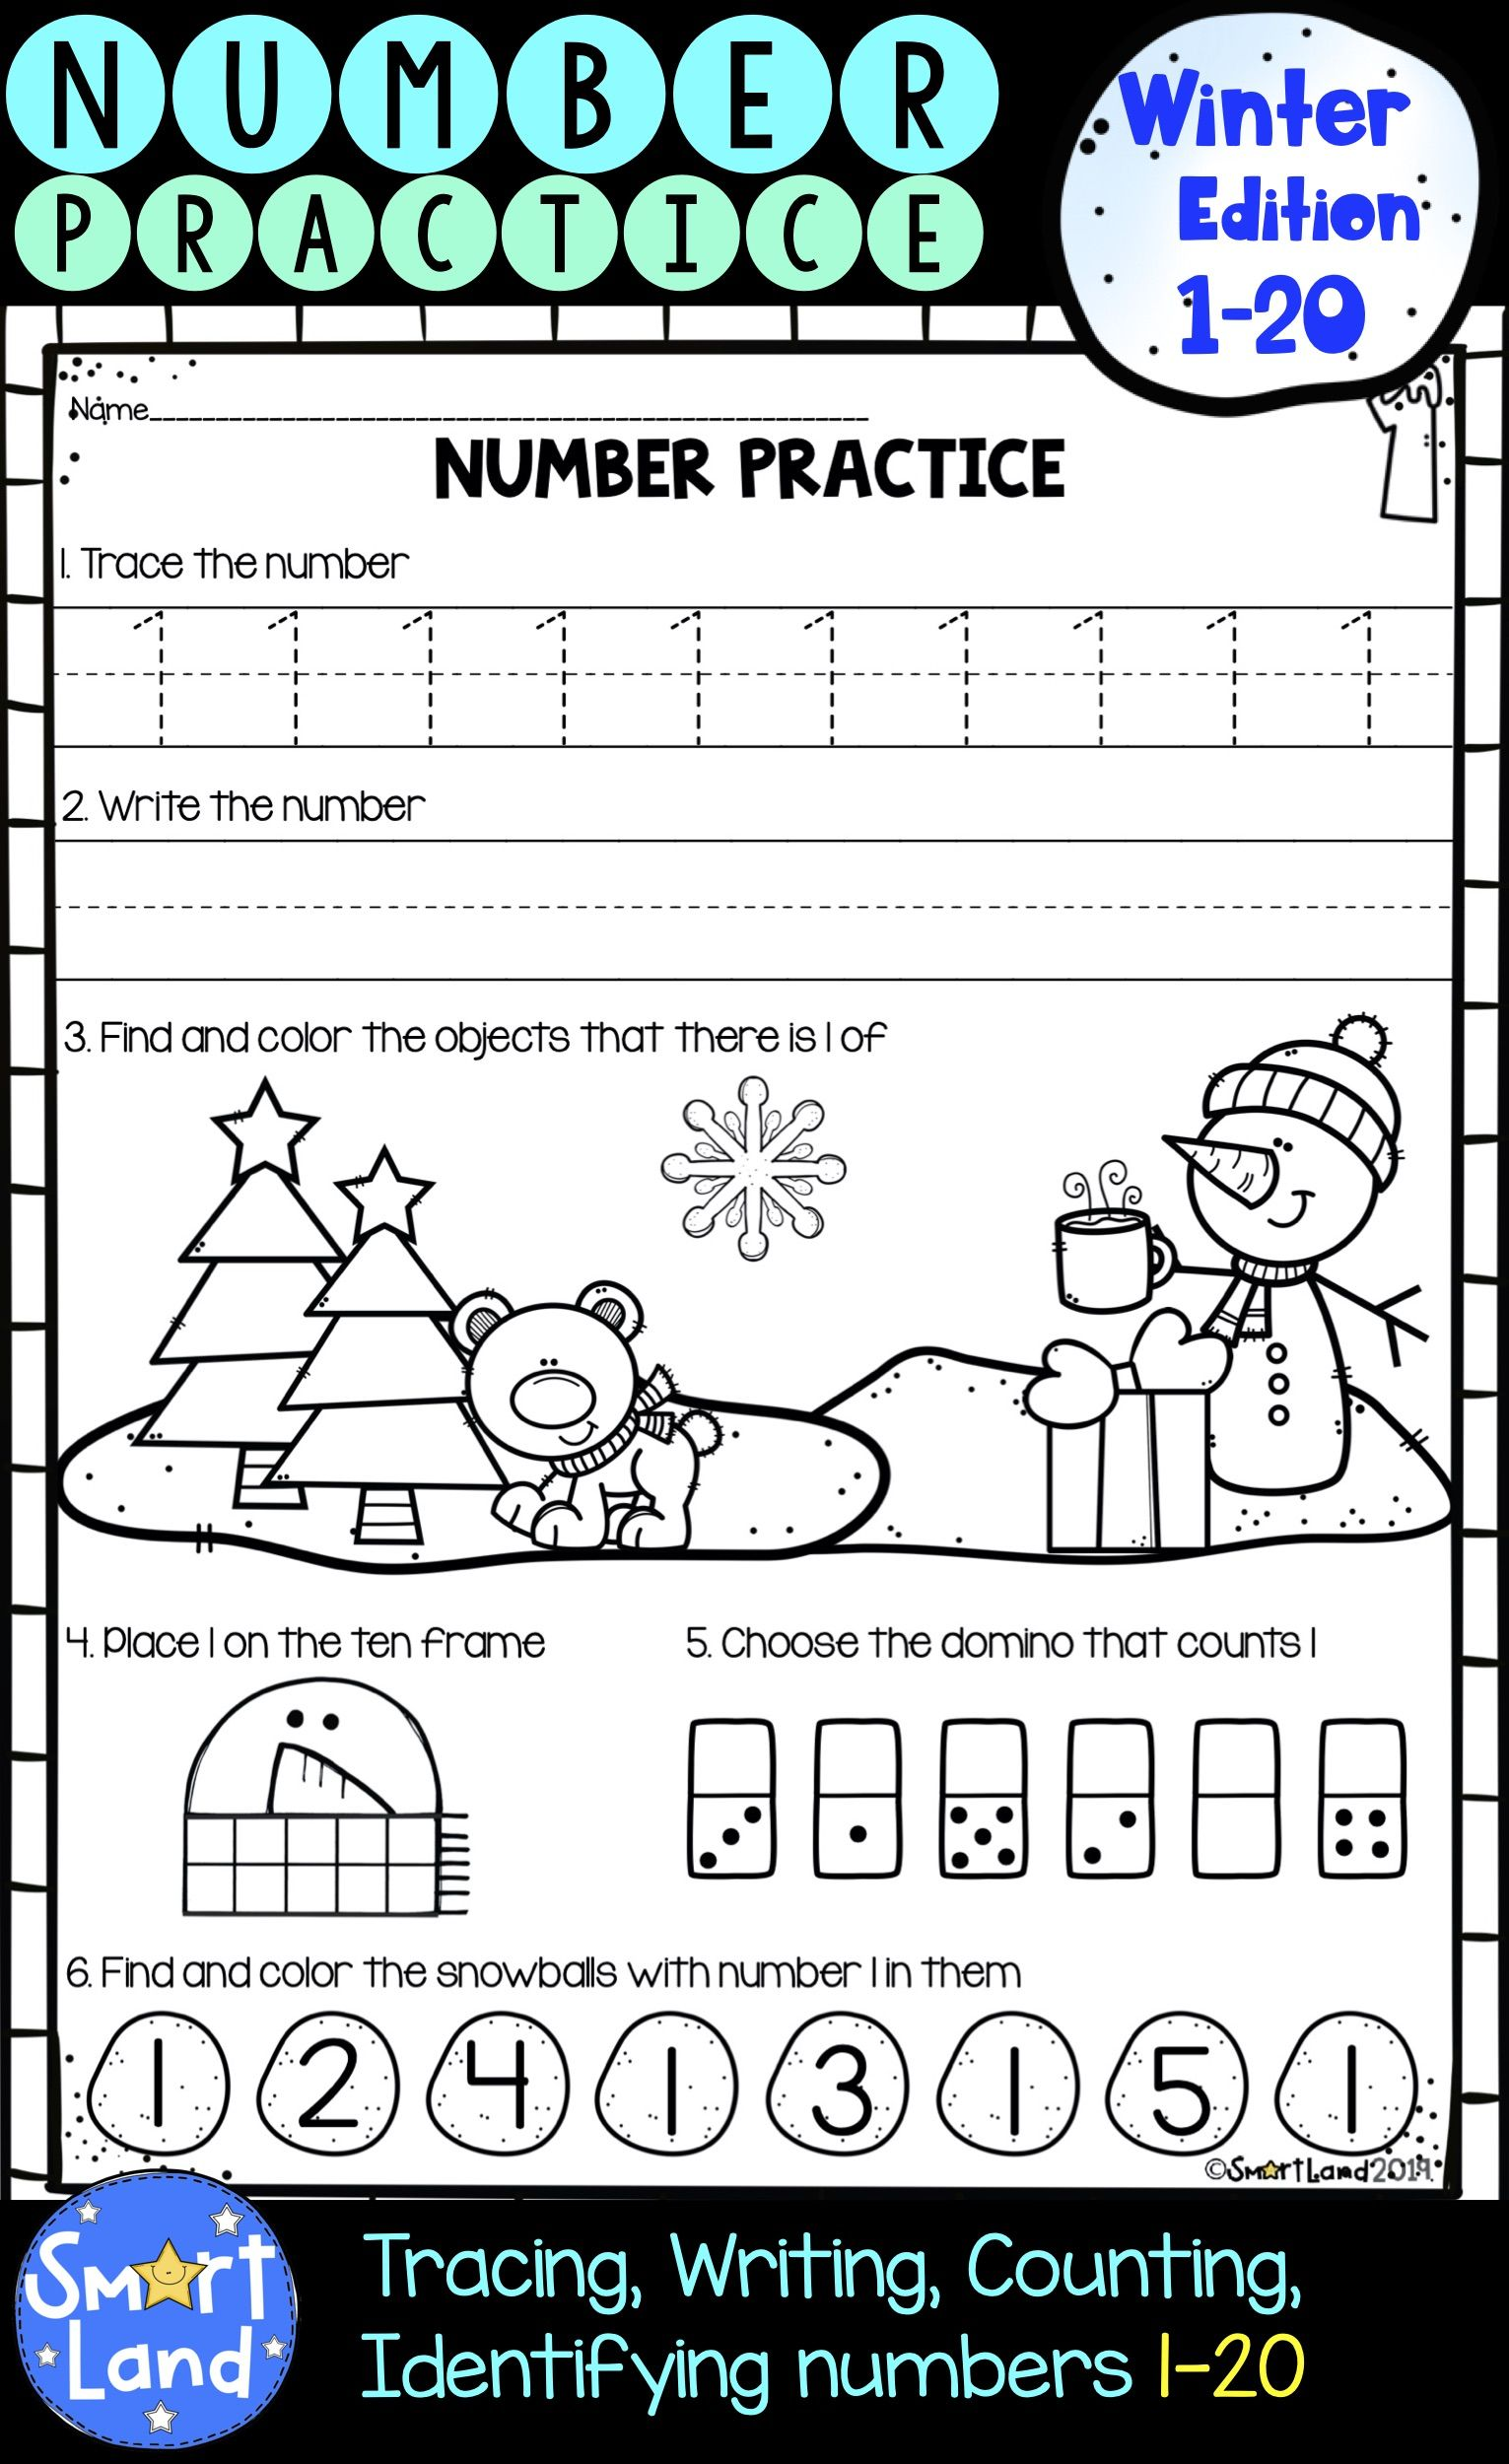 Numbers 1 20 Handwriting And Counting Winter Edition Preschool